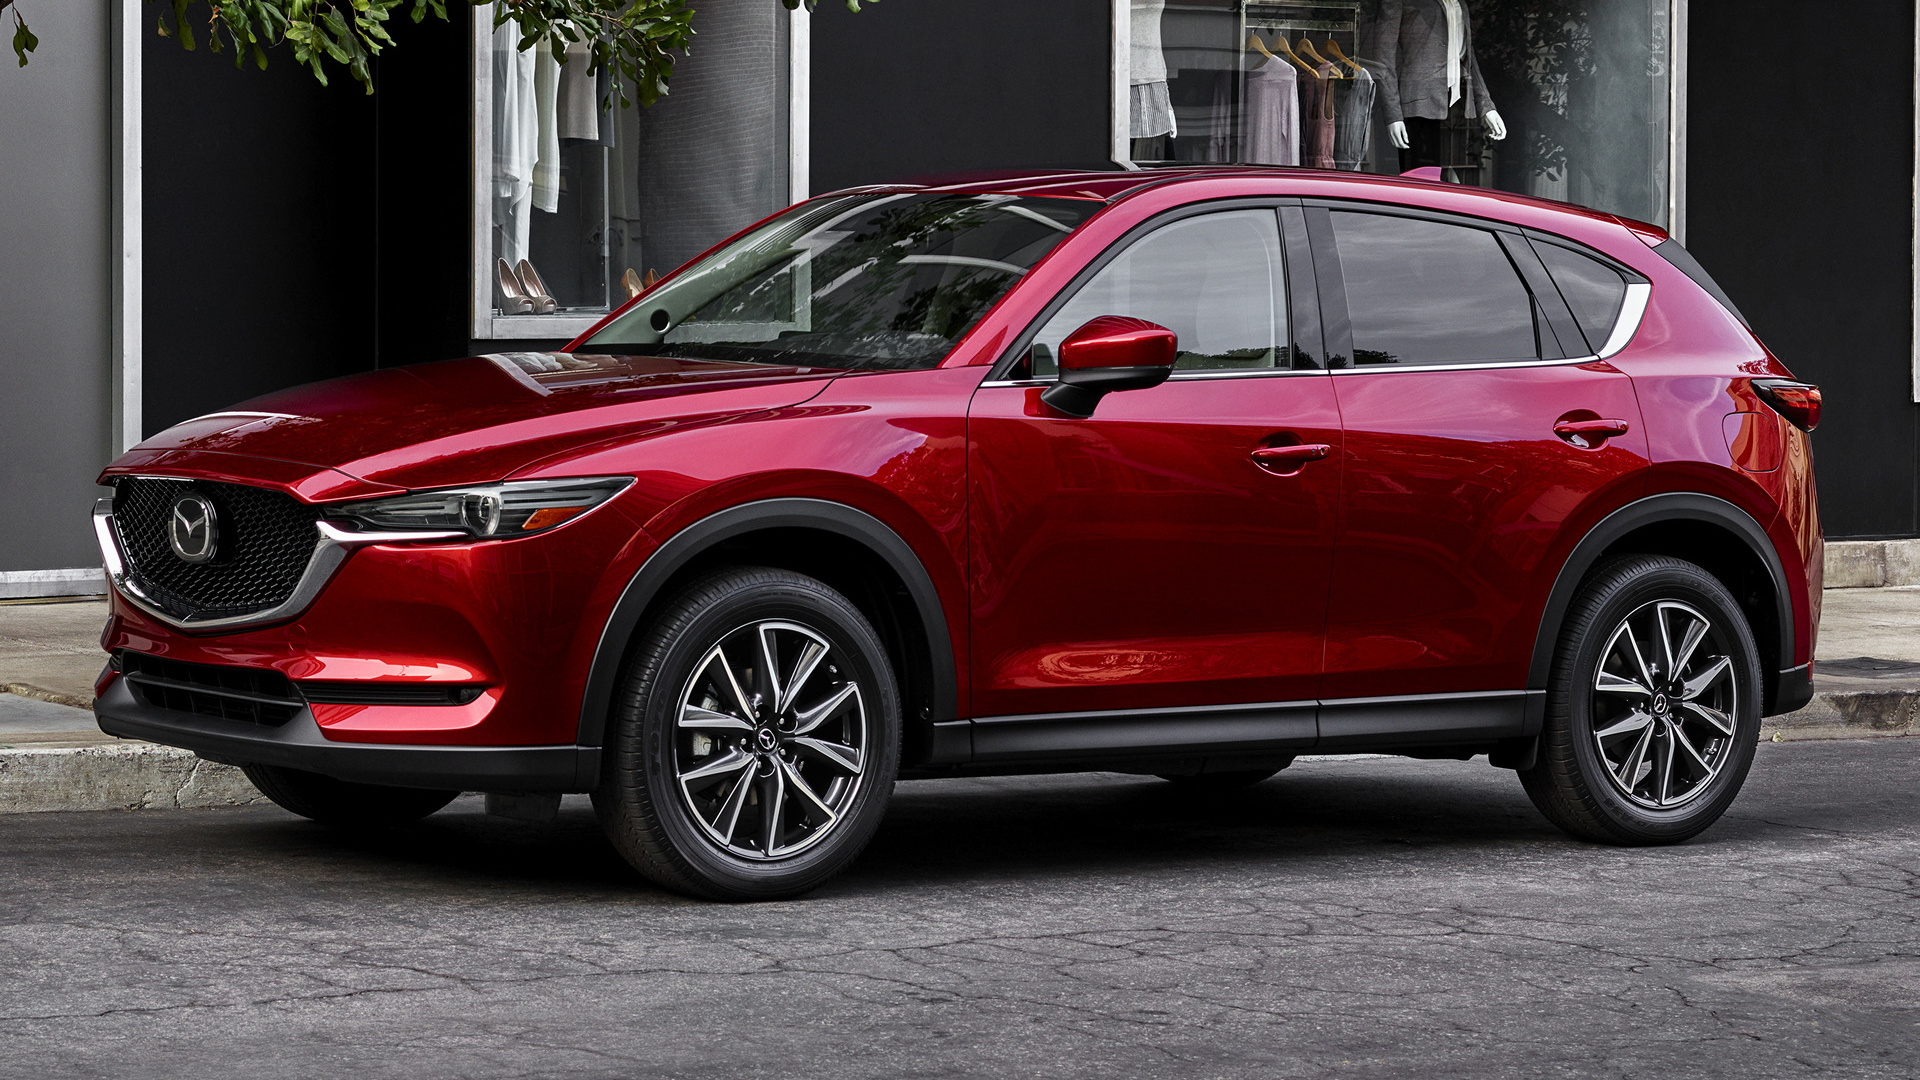 mazda cx 5 2017 us wallpapers and hd images car pixel. Black Bedroom Furniture Sets. Home Design Ideas